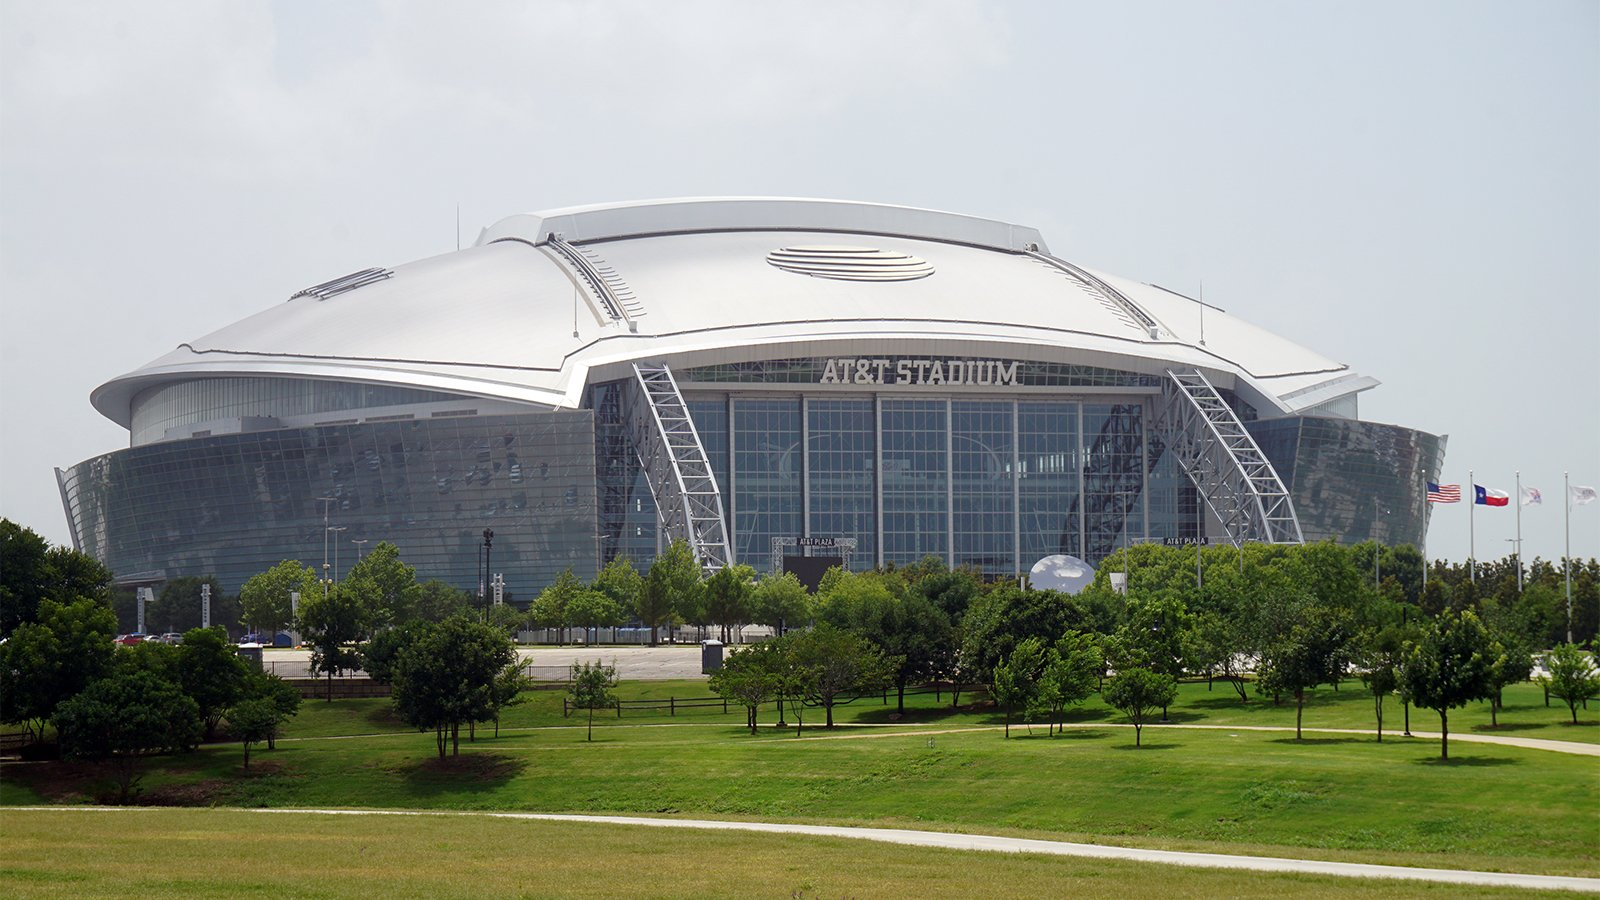 Promise Keepers will be meeting at AT&T Stadium in Arlington, Texas. Photo by Michael Barera/Creative Commons